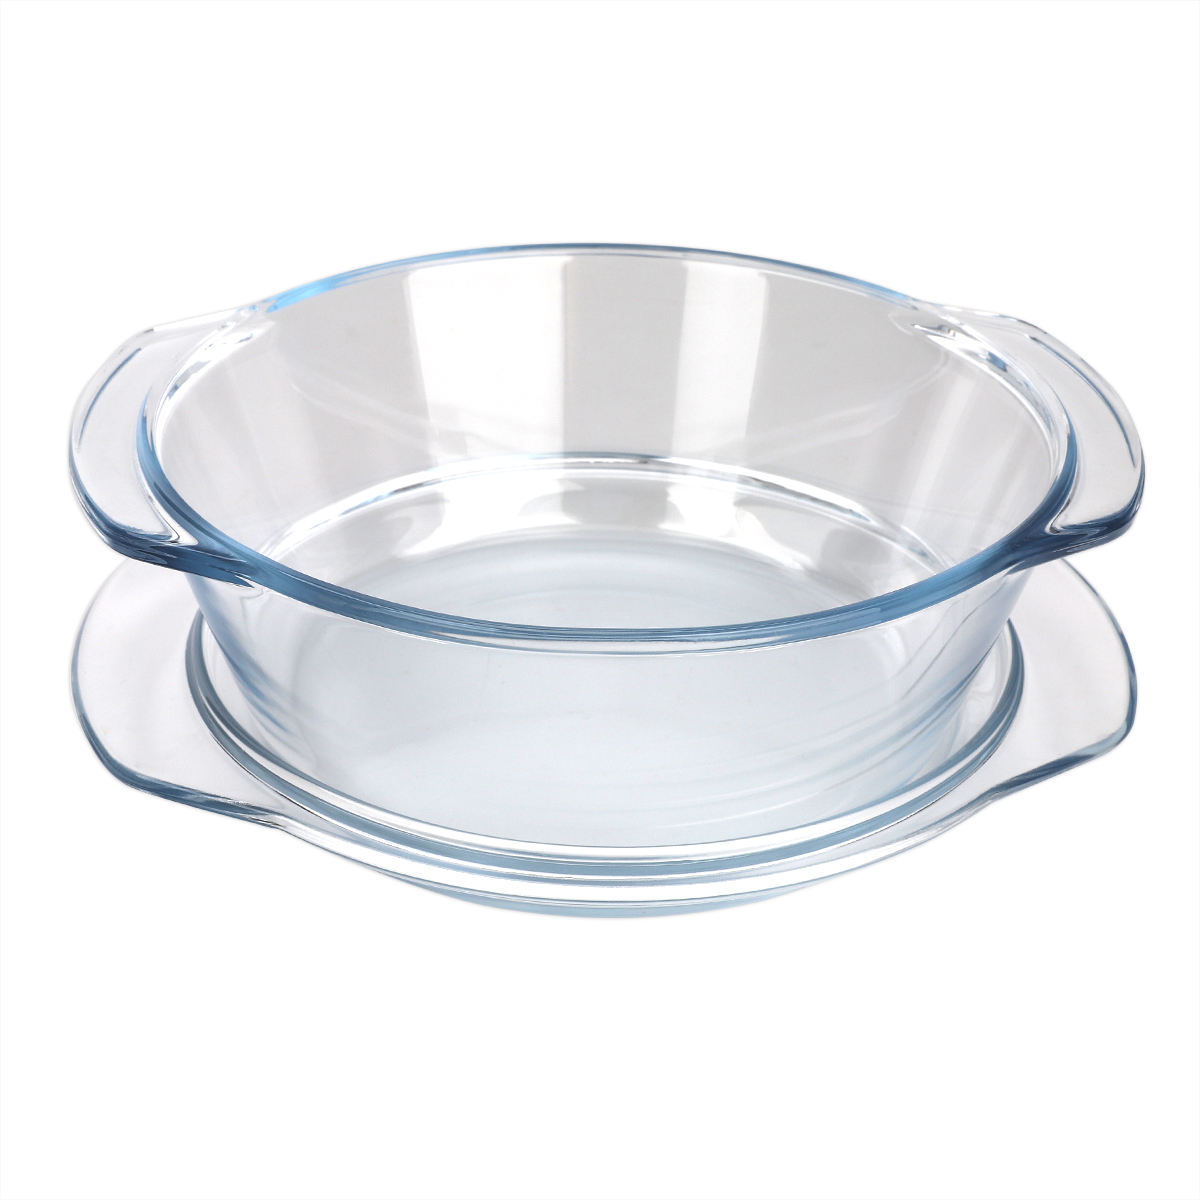 Amazon top sales hot pot glass casserole for oven radiant cooker steam pot